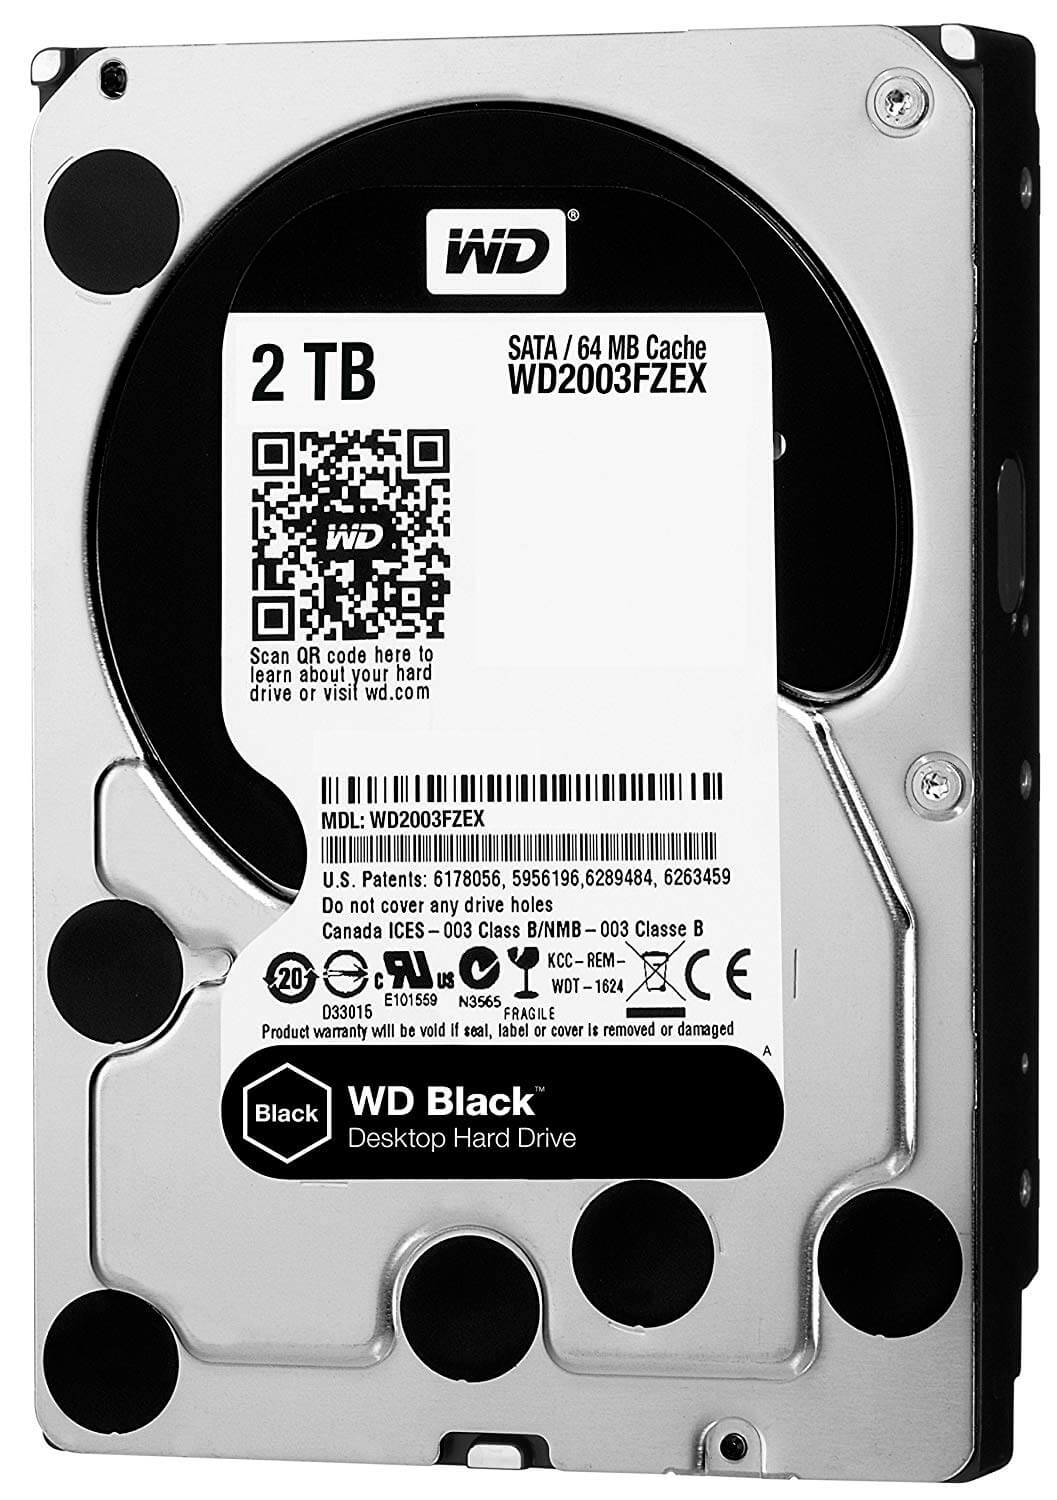 2.0TB Western Digital Black 7200RPM SATA3 6GB/s 64m cache